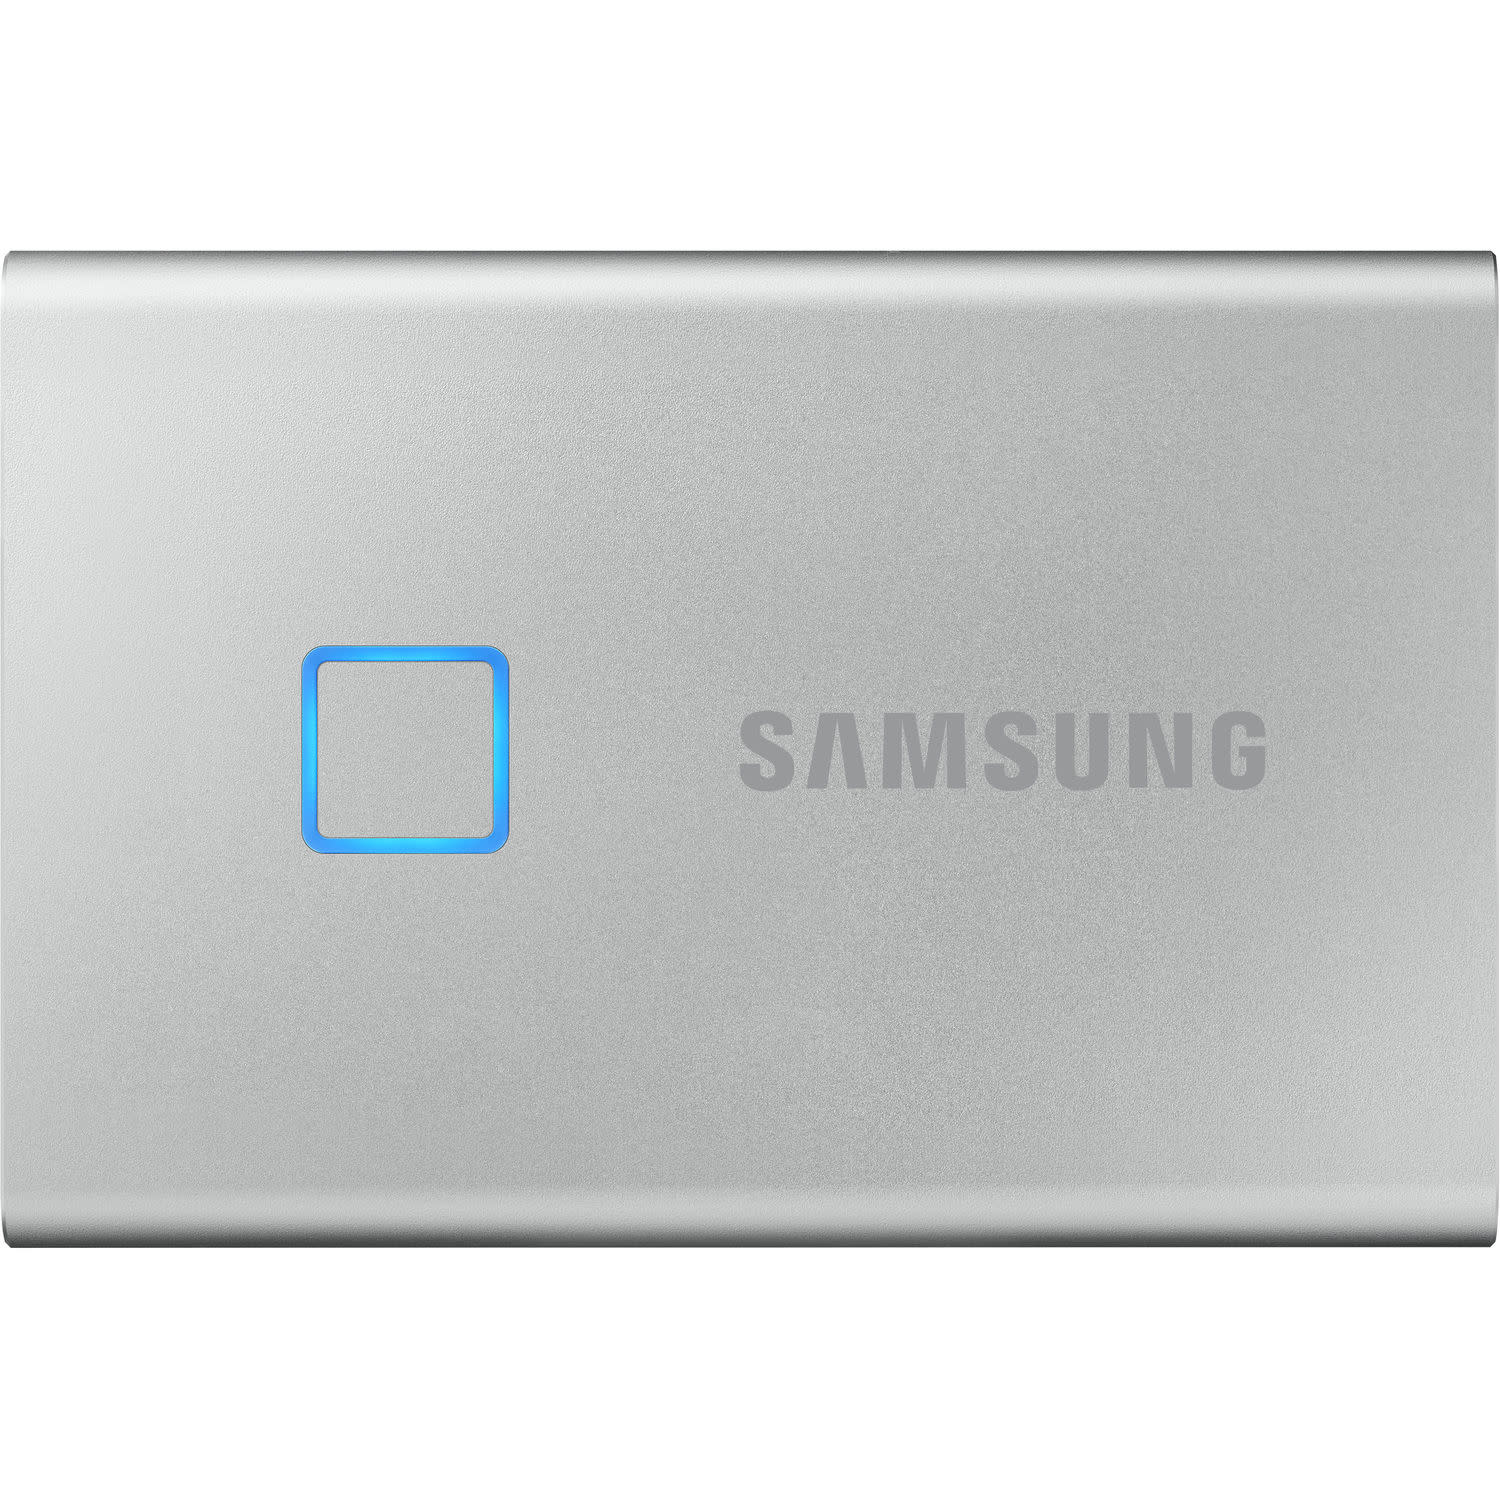 Samsung 1TB Portable SSD T7 Touch USB 3.2, Silver